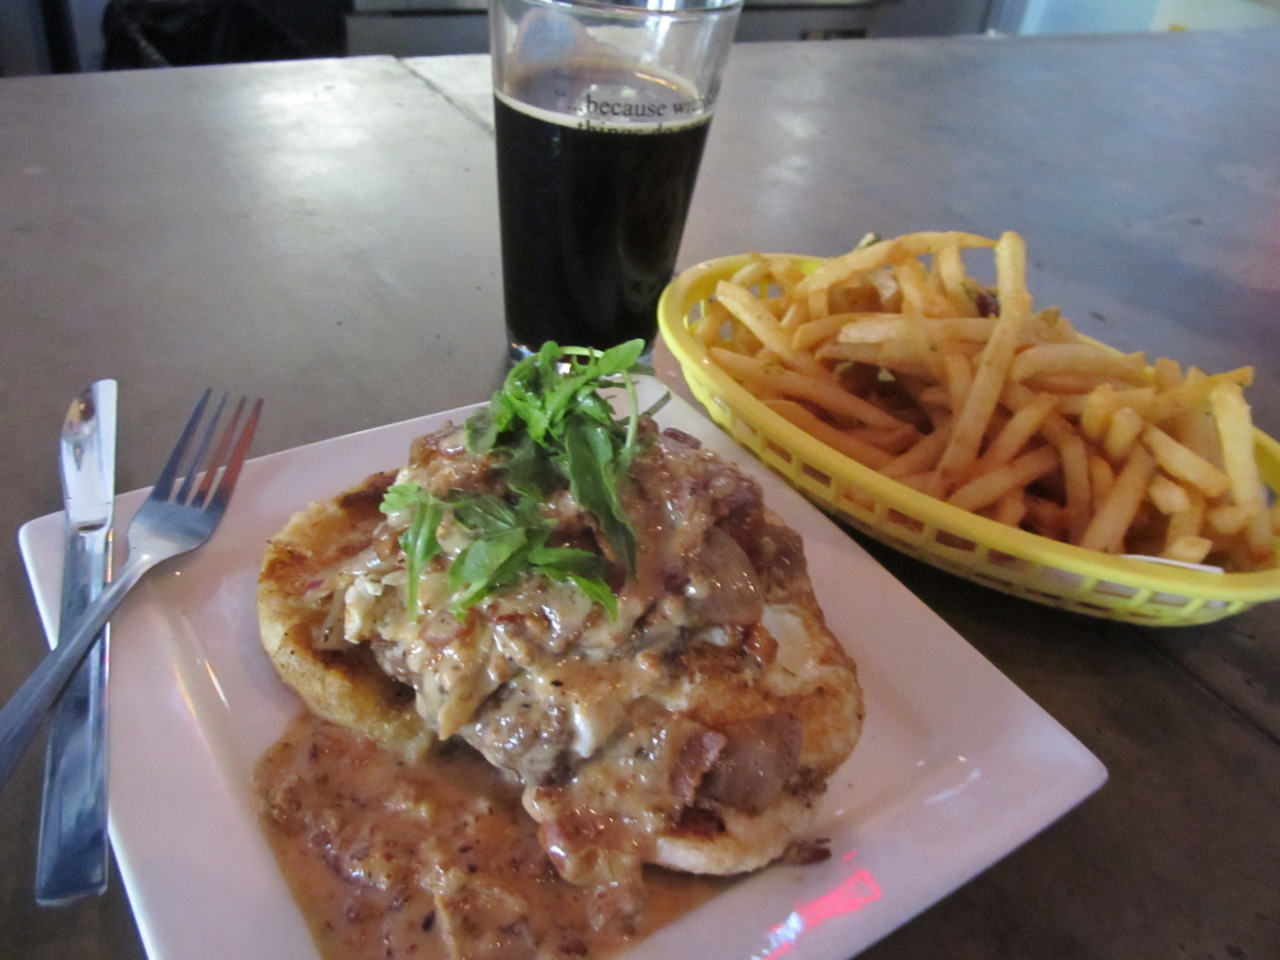 """Burger Stand's Breakfast Burger w/ Duck Fat Fries and a pint of Blind Tiger Java Porter in Topeka, KS."" Photo by Stefan B. Help Stefan win Womply's Favorite Eats Photo Contest by clicking the photo and hitting ""Like""! To learn more about the contest, click here."